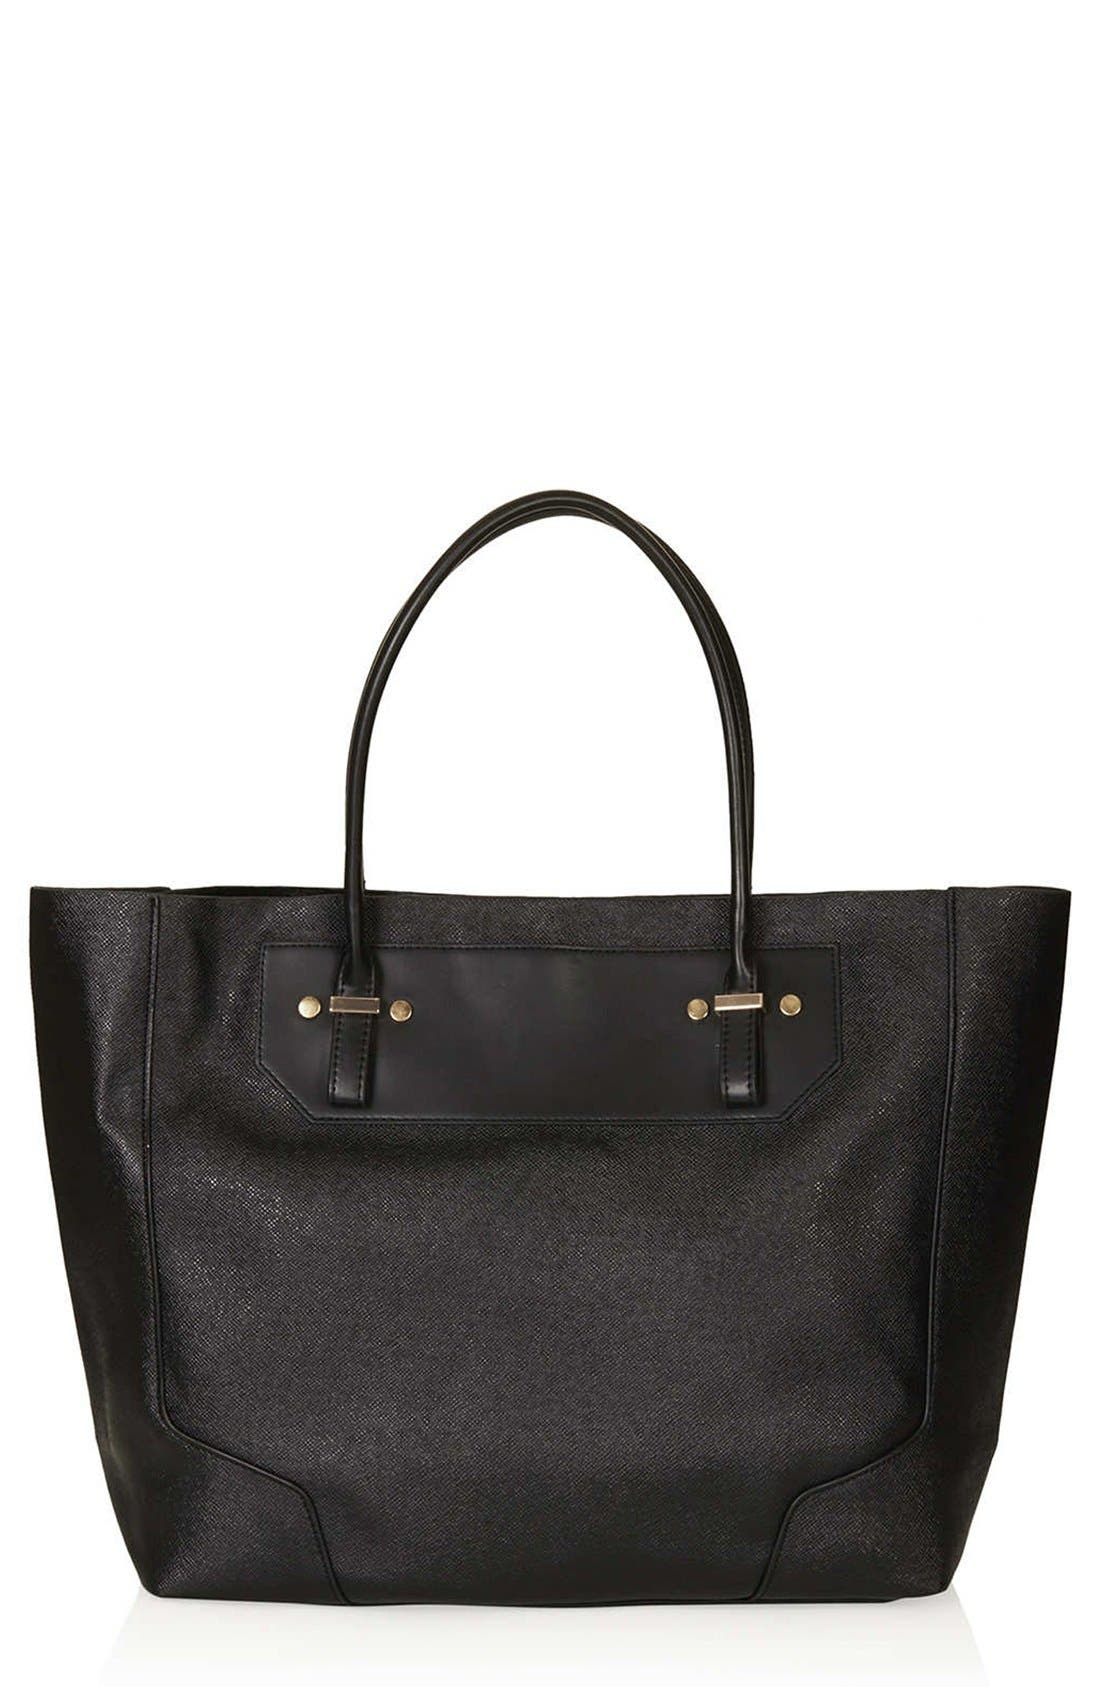 TOPSHOP, Faux Leather Tote, Main thumbnail 1, color, 001